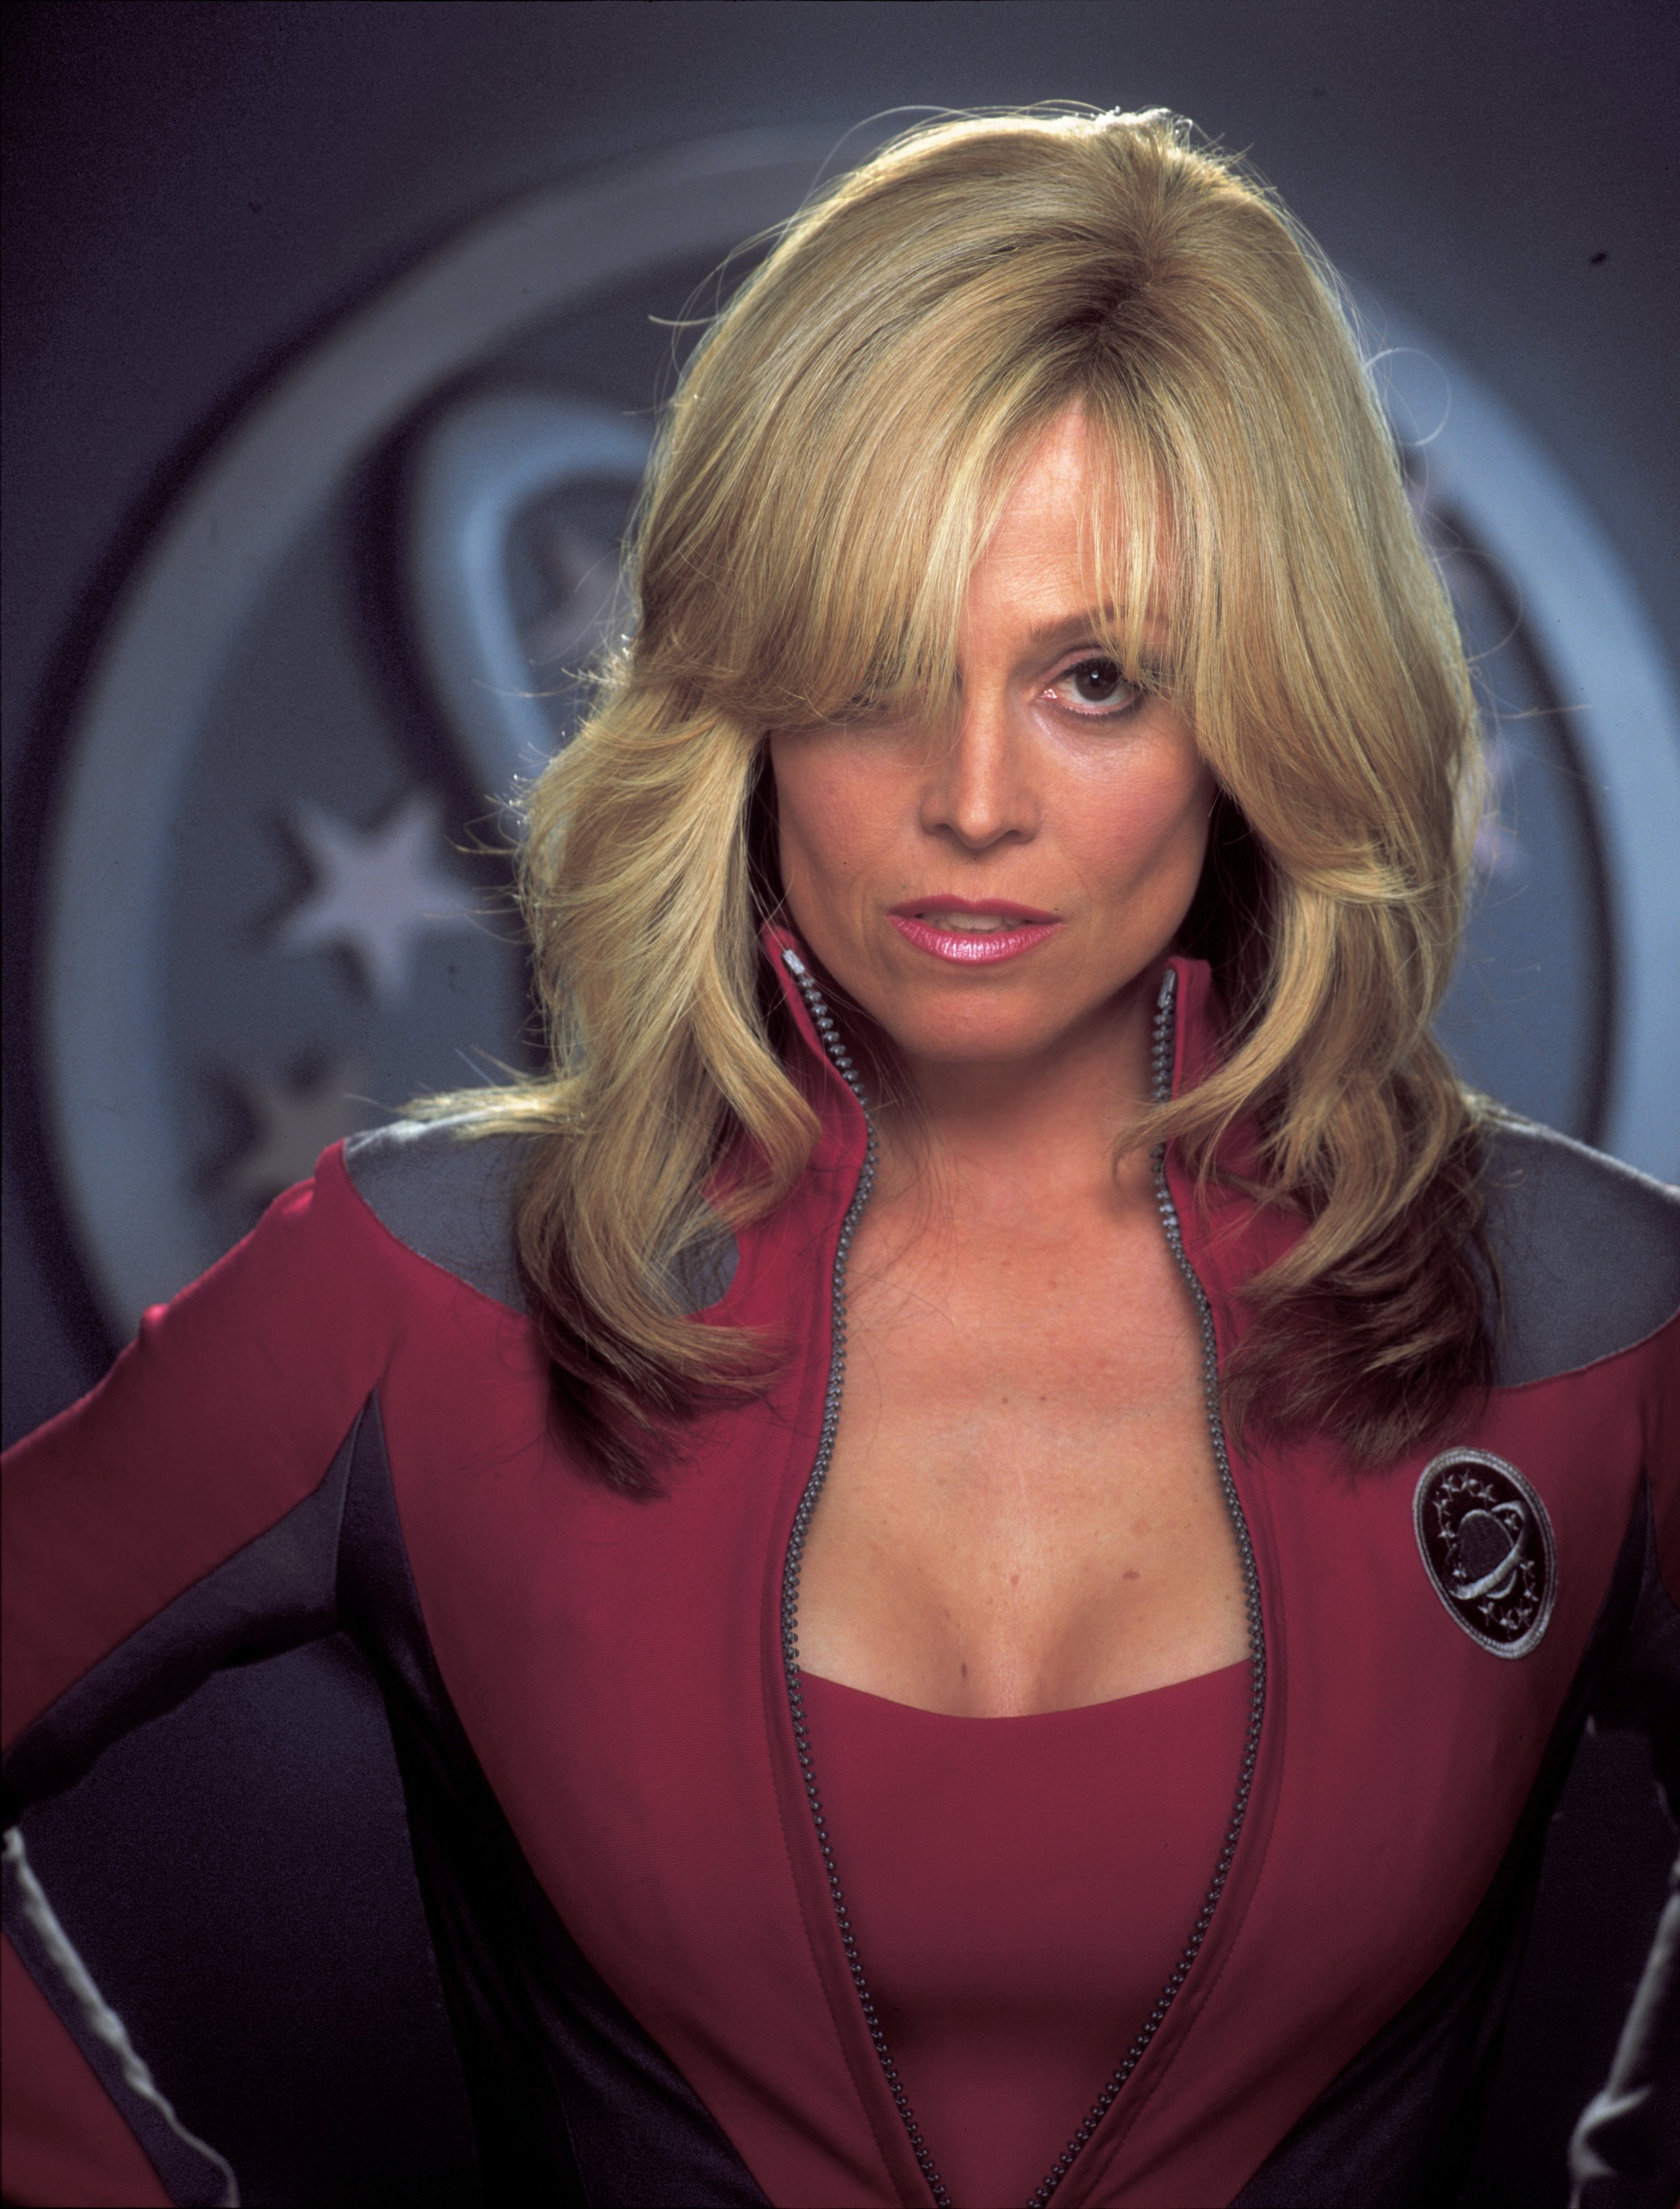 sigourney weaver actress 1999 galaxy quest BLONDE